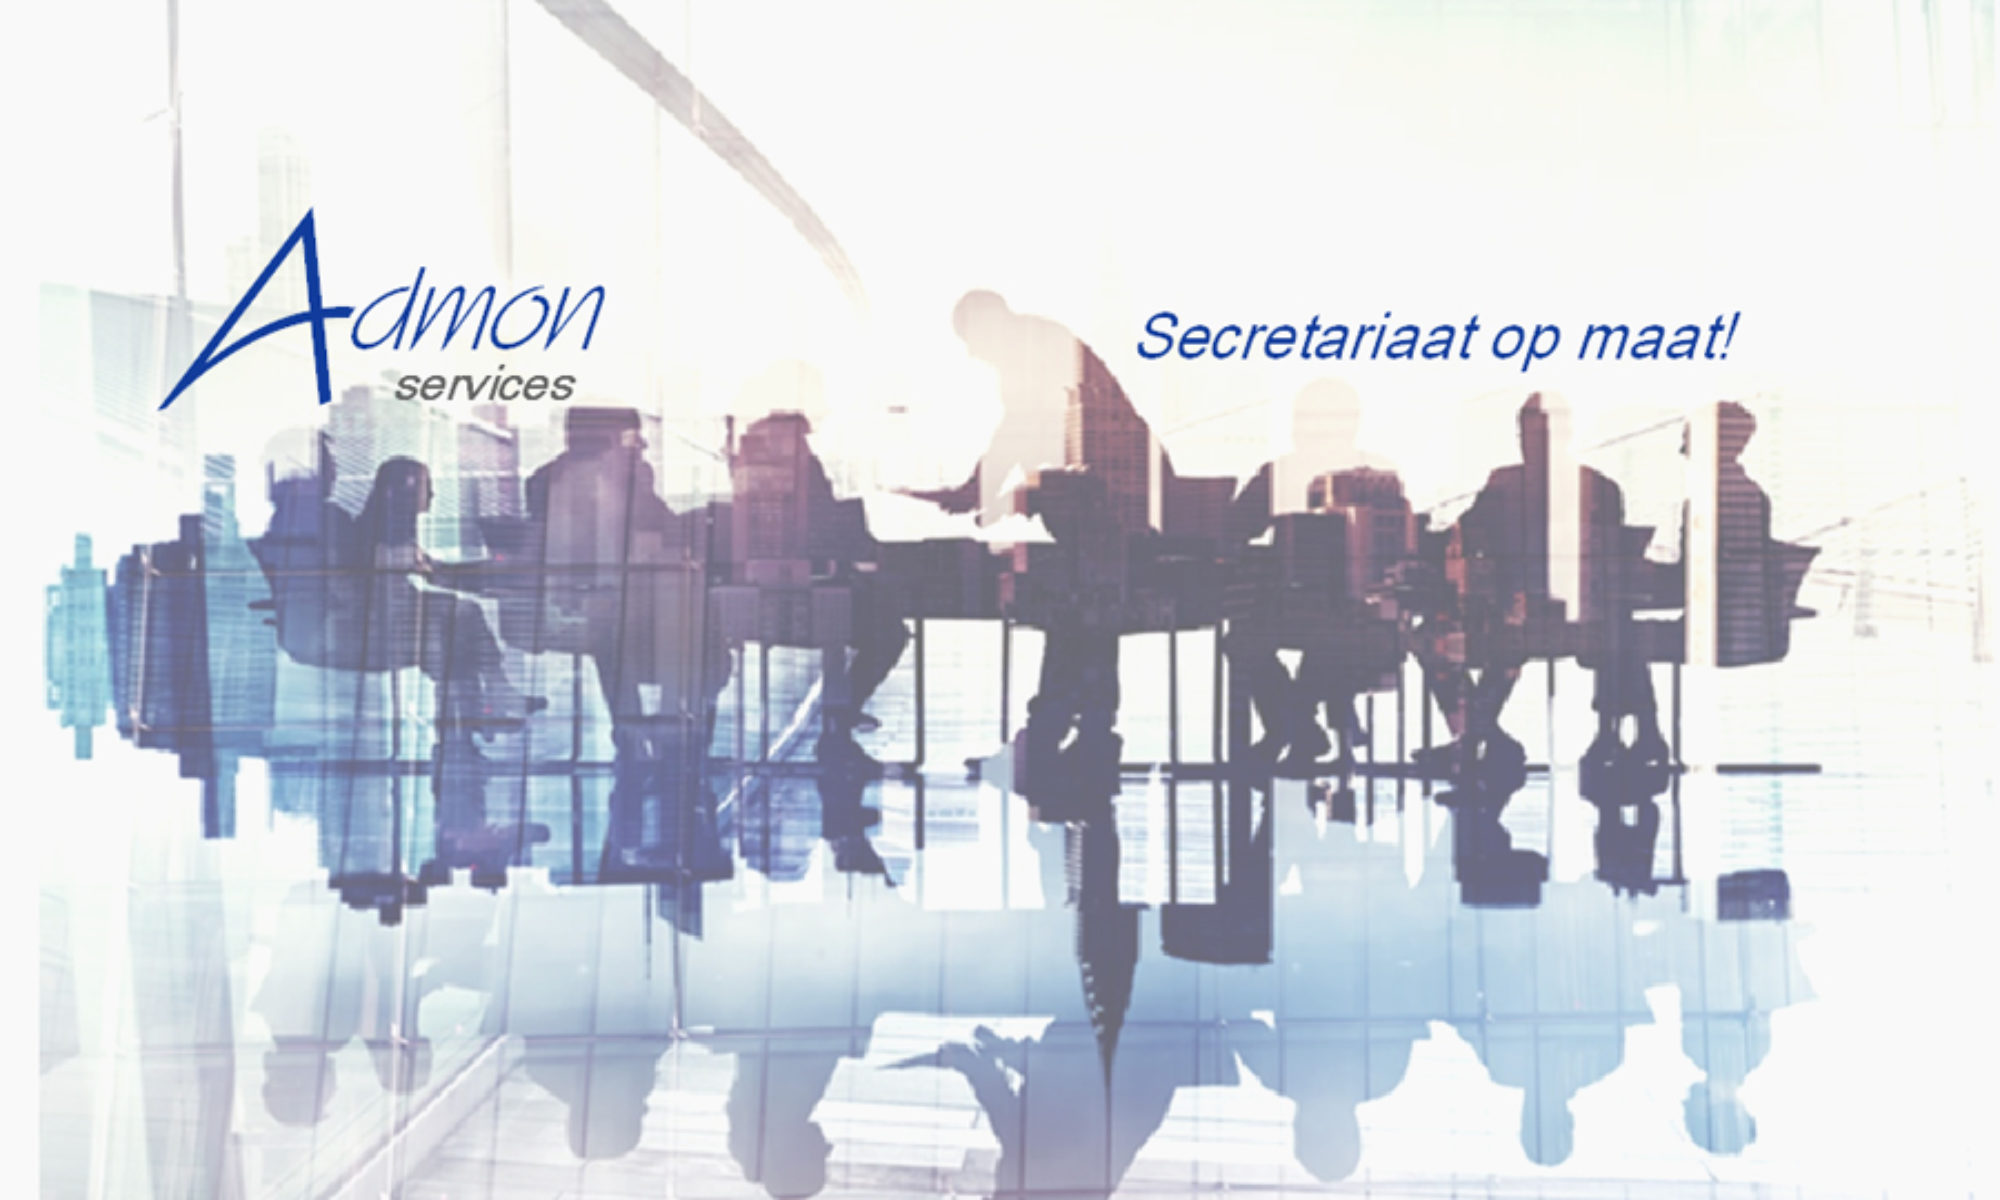 Admon Secretariaat services